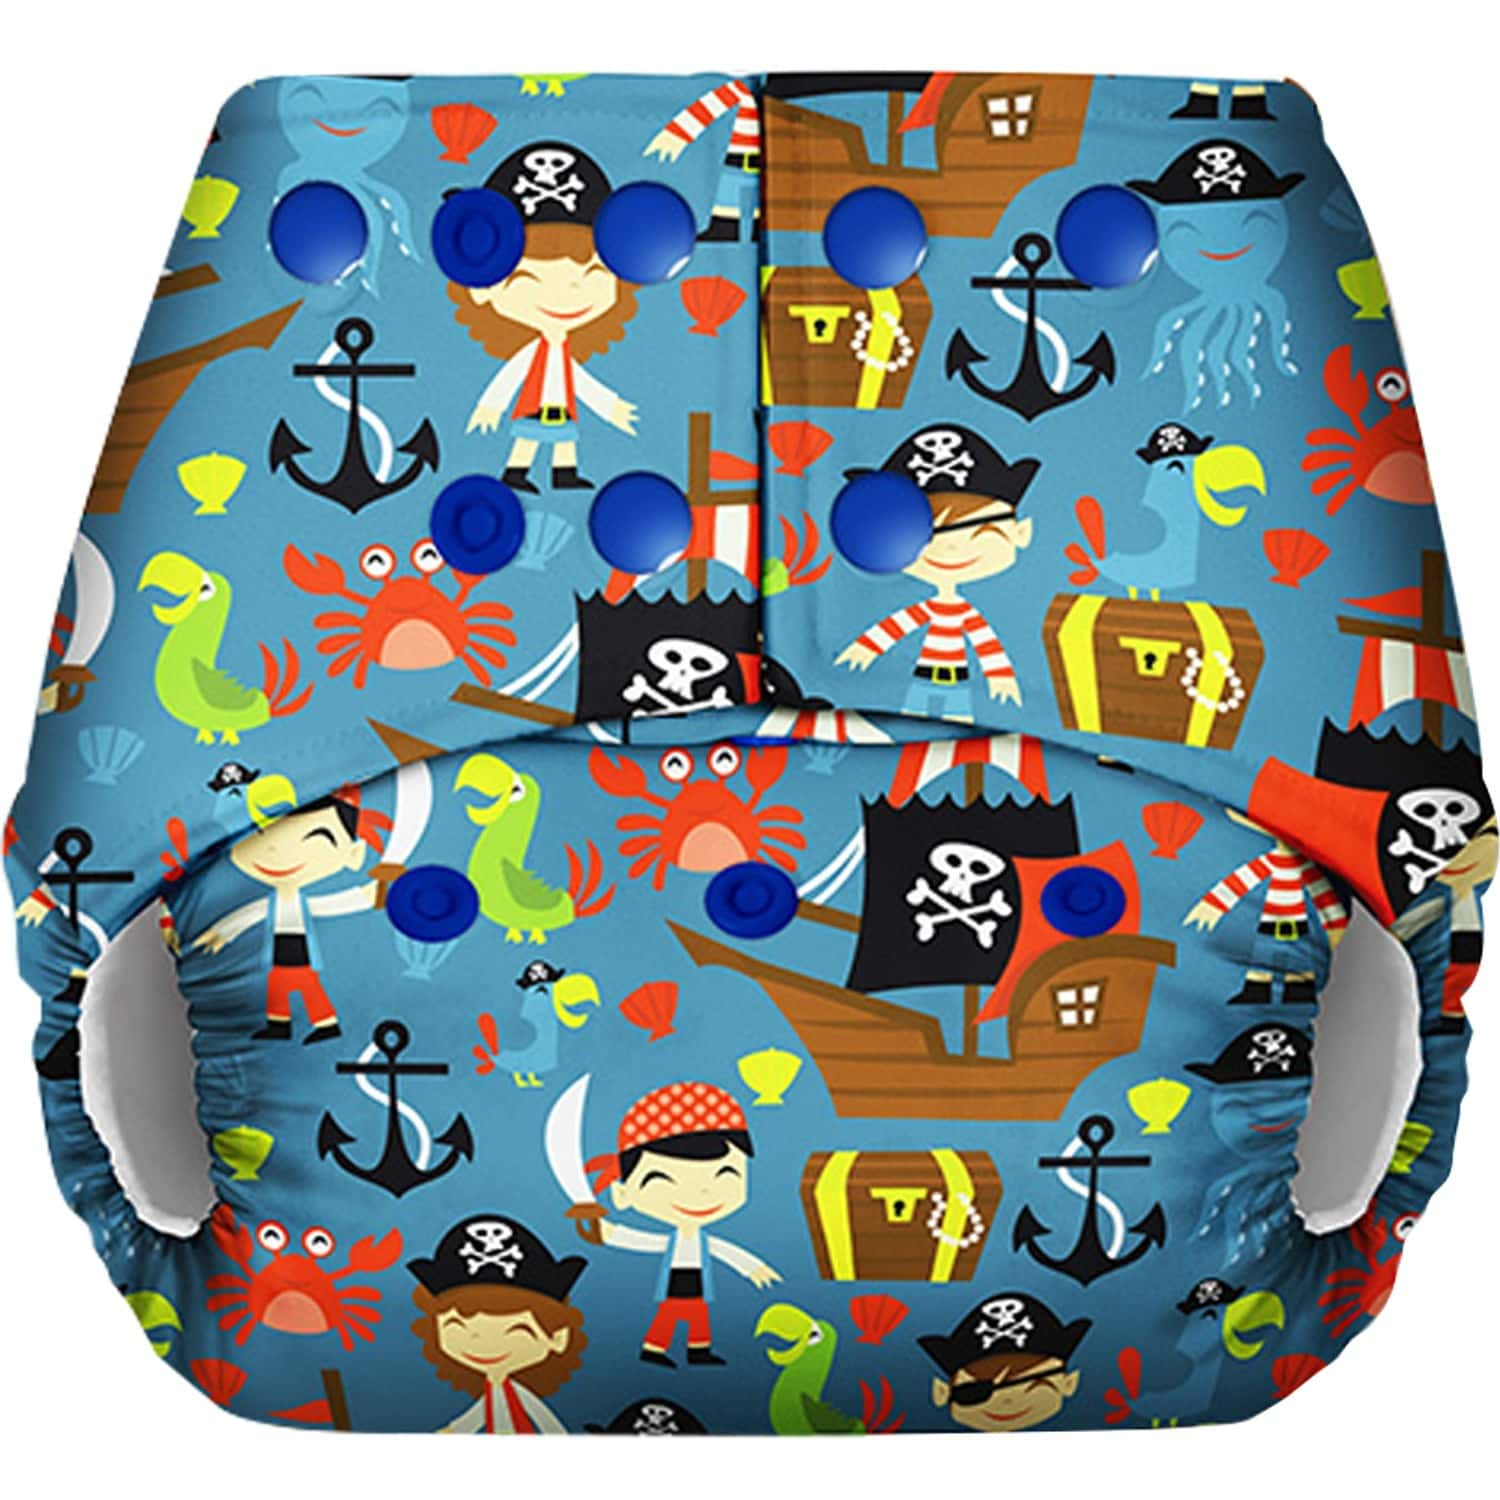 Basic - Freesize Reusable Pocket Cloth Diaper For Babies-with Dry Feel Insert - Pirate